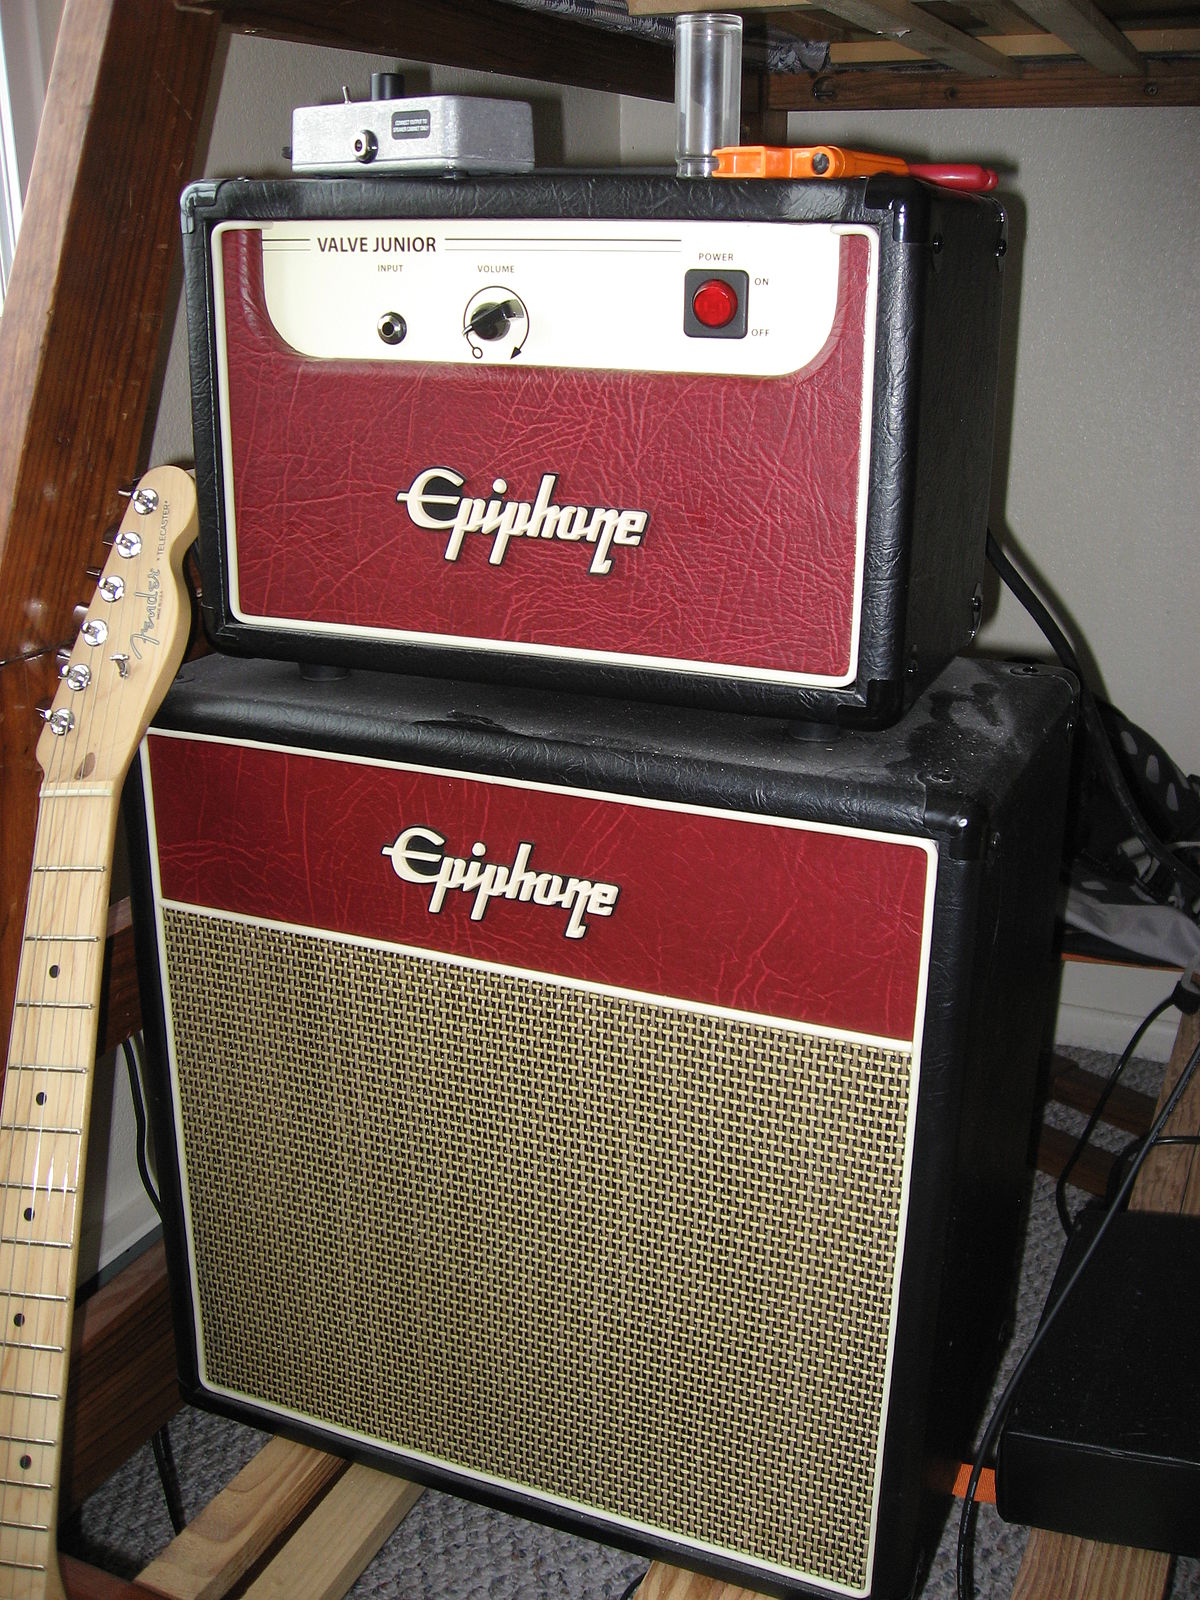 Epiphone Valve Junior Wikipedia